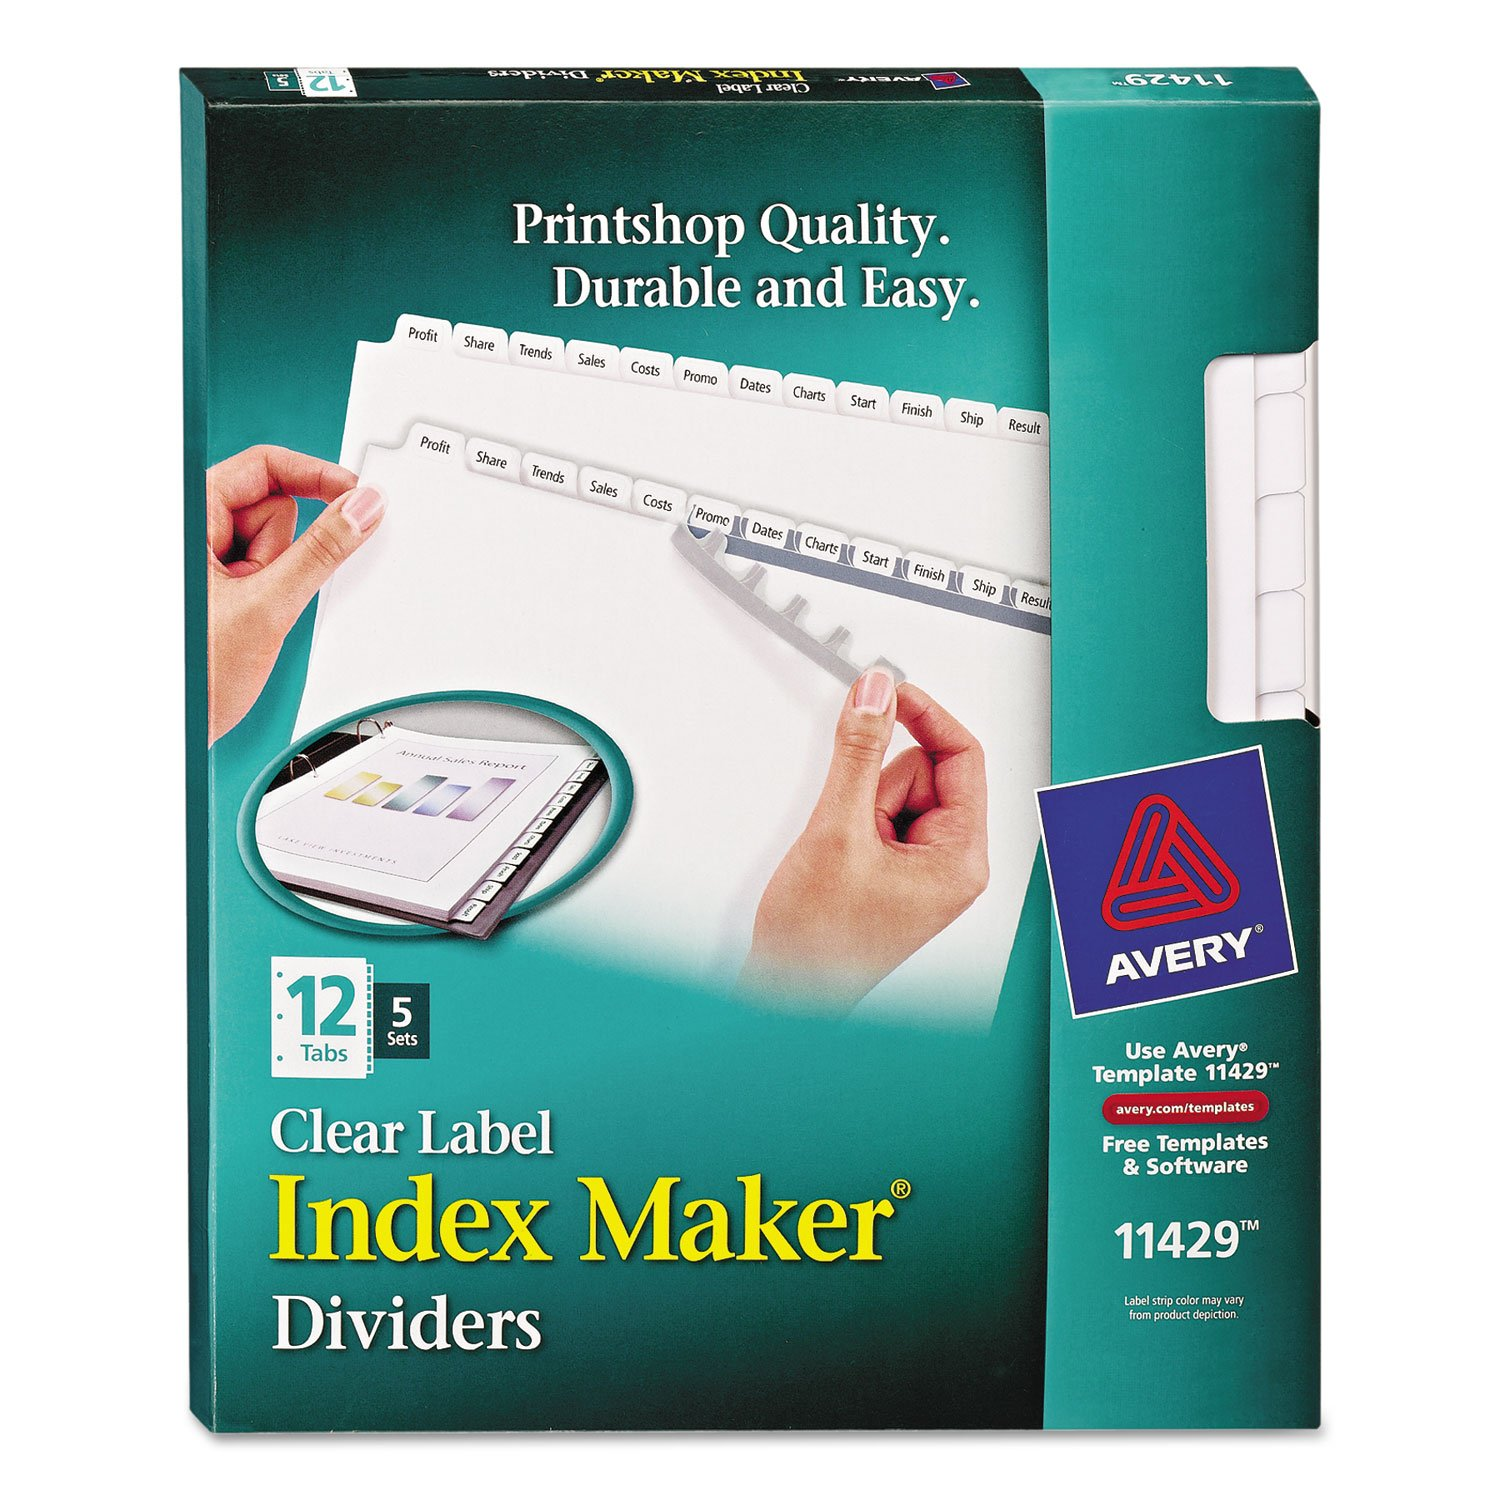 Index Maker Clear Label Dividers (12 Tabs, 5 Sets/Pack) by Avery